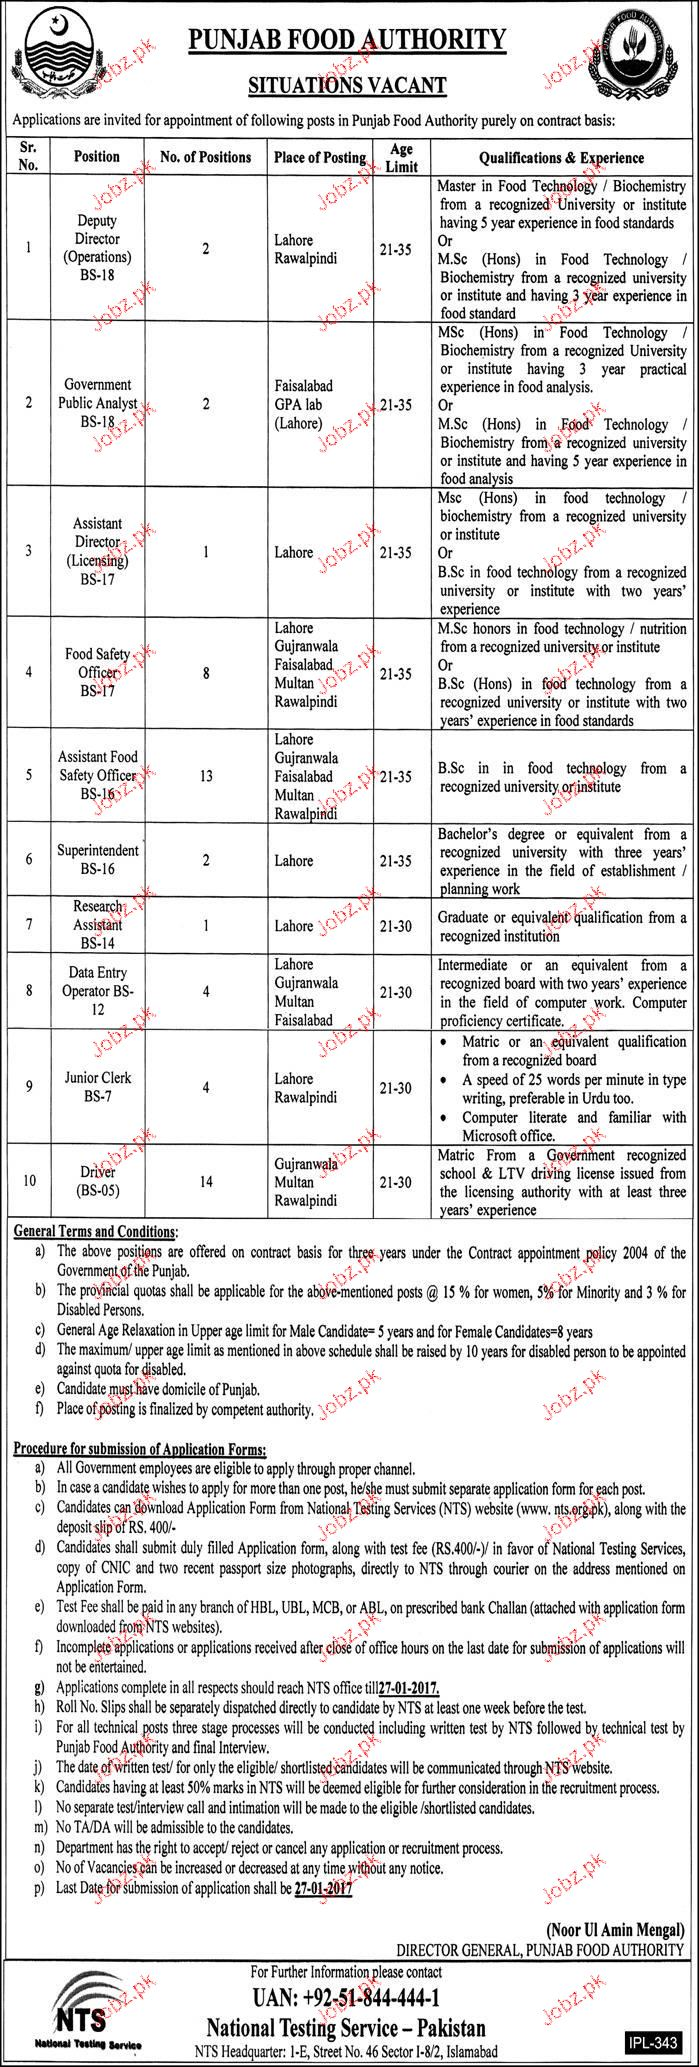 Deputy Director Operation, Government Public Analysts Wanted